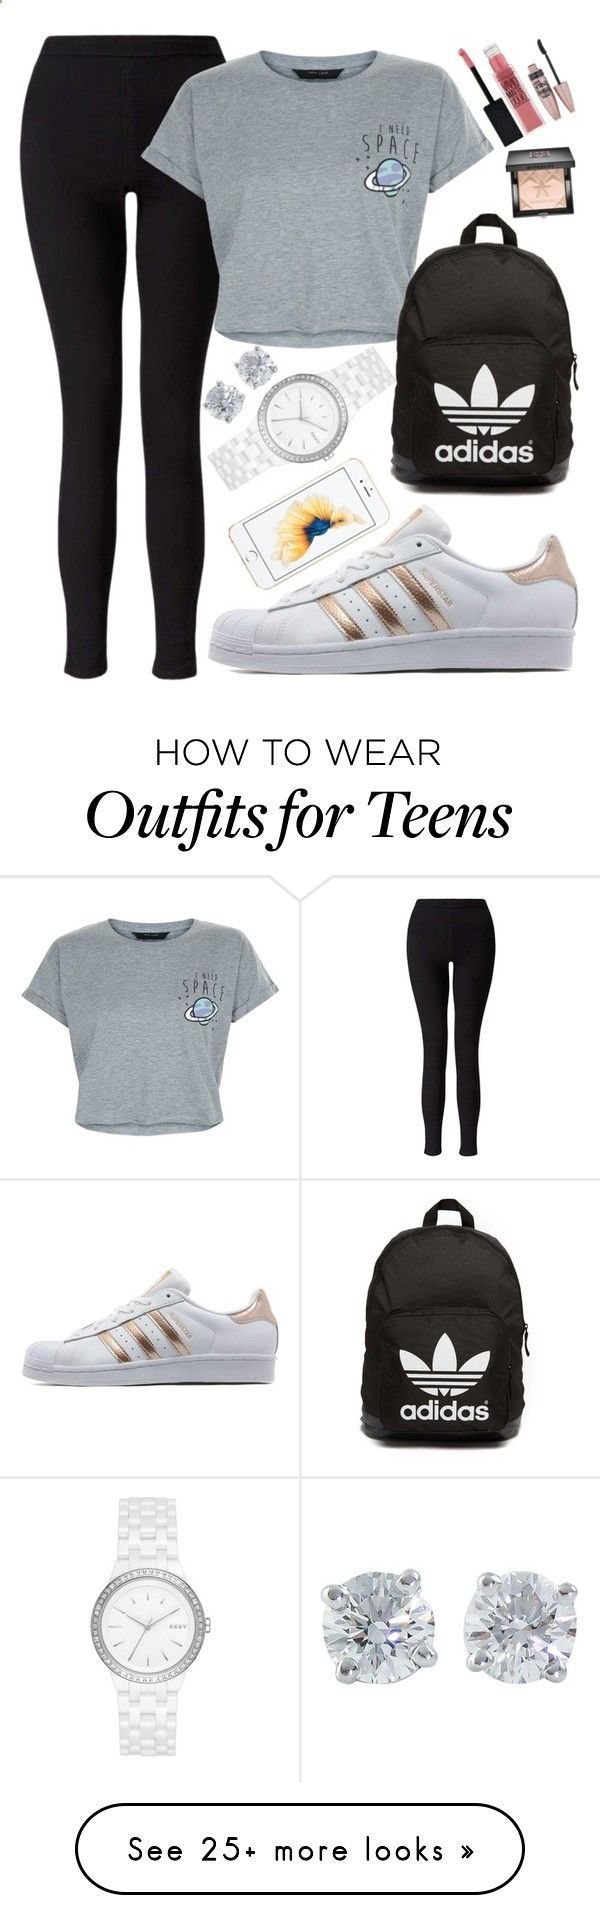 Back to School Outfits BACK TO SCHOOL OUTFITS #1 by beautybyee on Polyvore featuring Miss Selfridge, New Look, adidas Originals, Tiffany & Co., DKNY, Maybelline, Givenchy and statementnecklaces